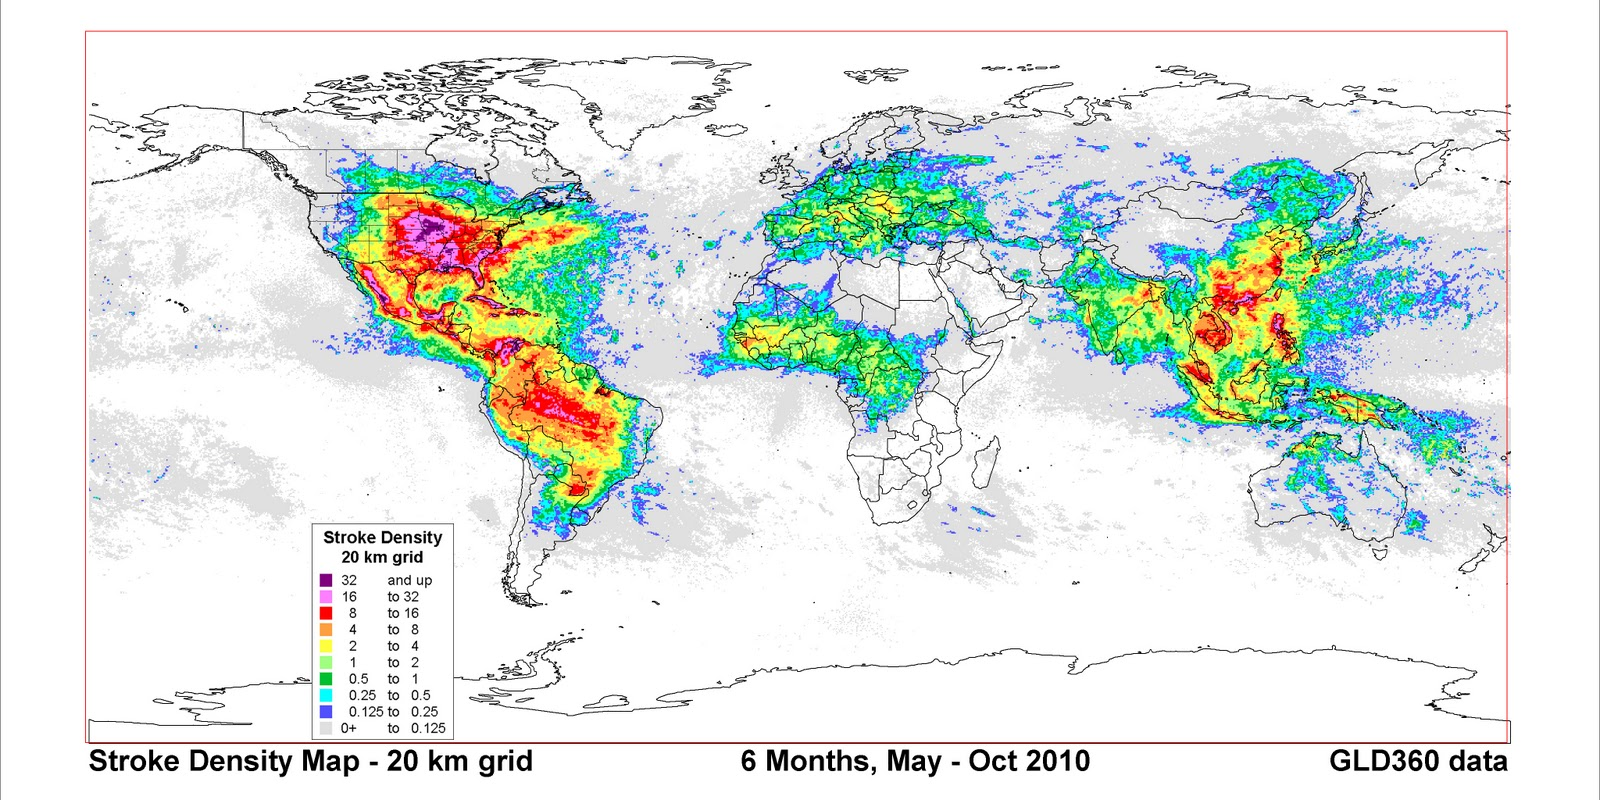 Mike smith enterprises blog six months of world lightning from our friends at vaisala here is a map of world lightning strikes from march 1 to october 31 2010 click to enlarge gumiabroncs Image collections